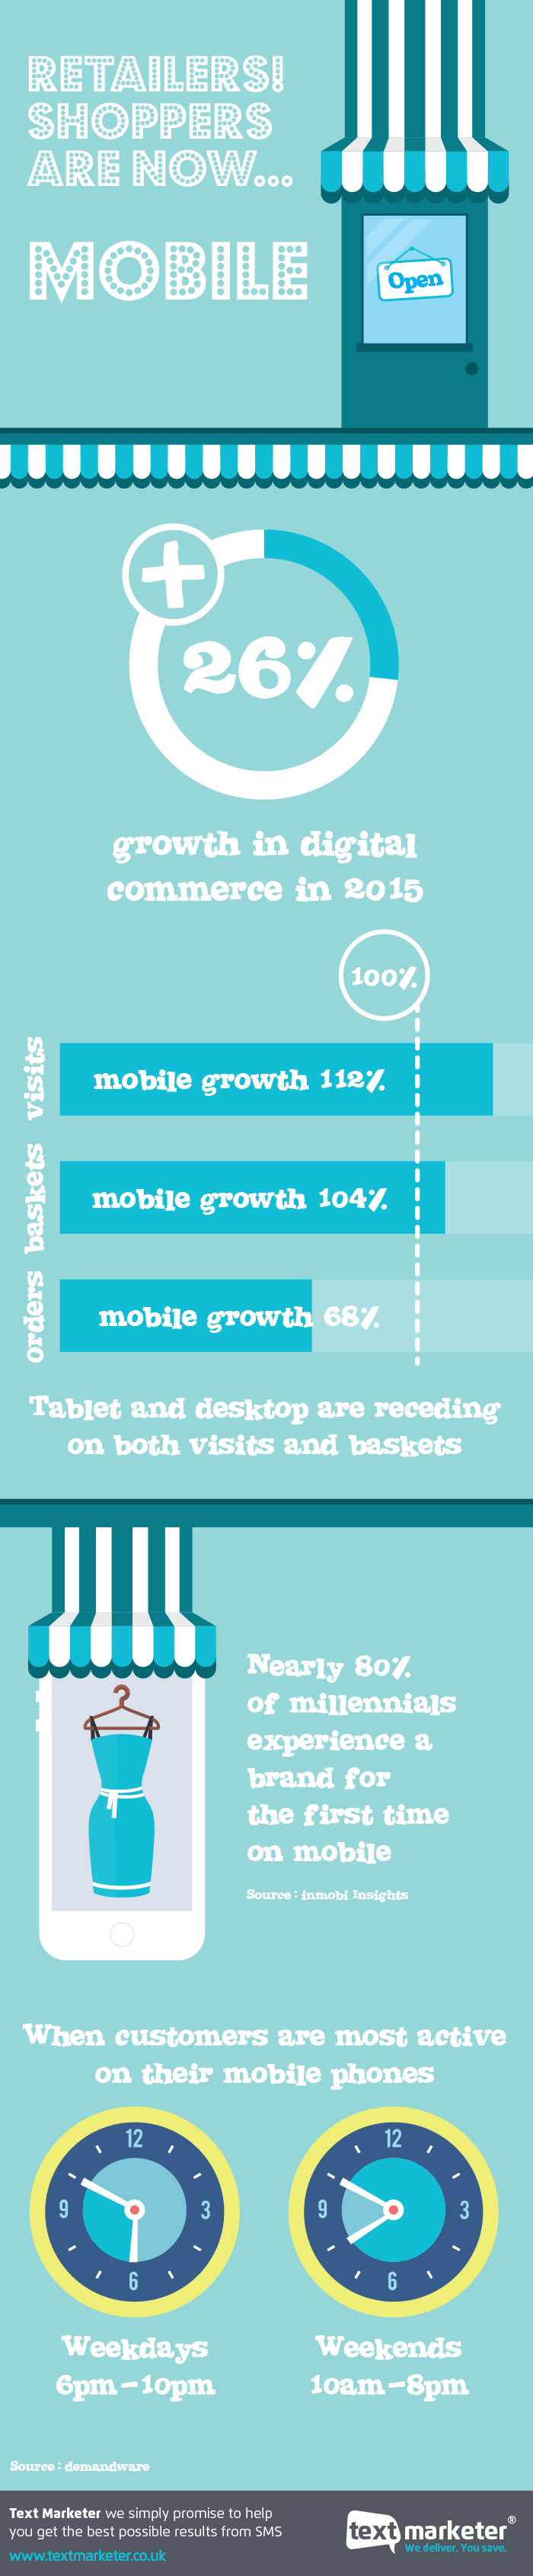 Text Marketer retail shoppers now mobile infographic